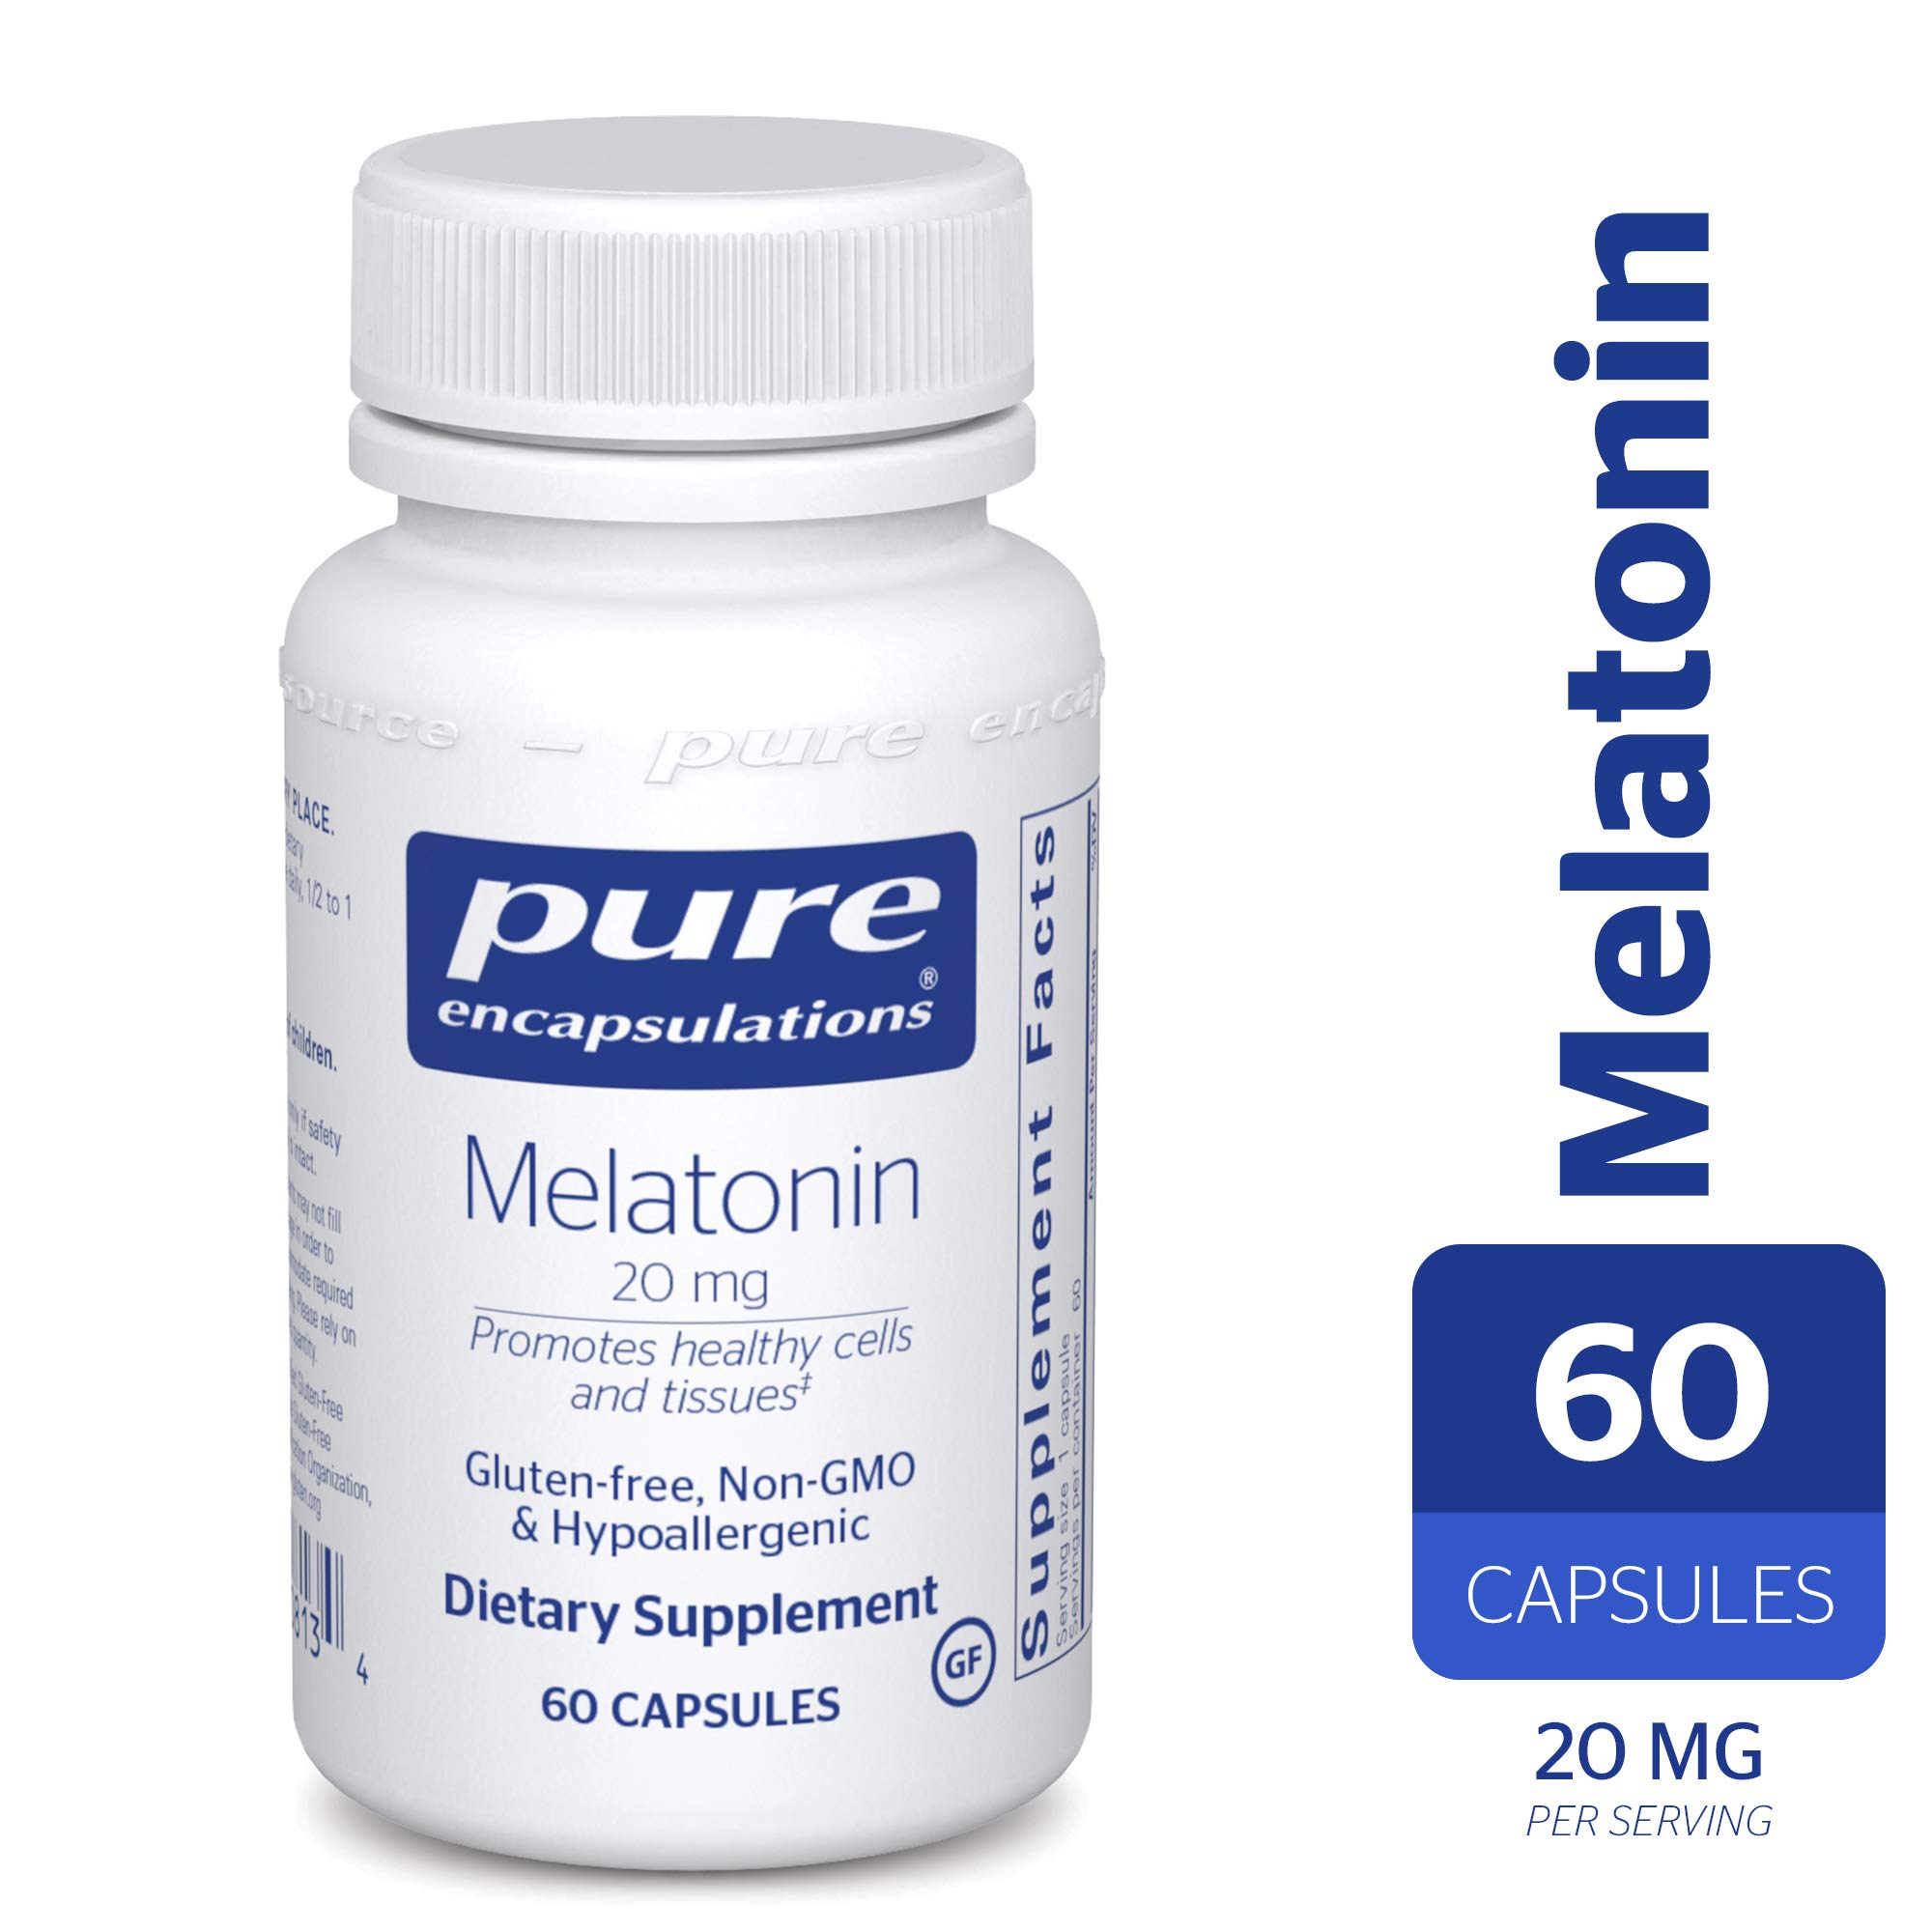 Pure Encapsulations - Melatonin 20 mg - Hypoallergenic Supplement Promotes Healthy Cells and Tissues* -